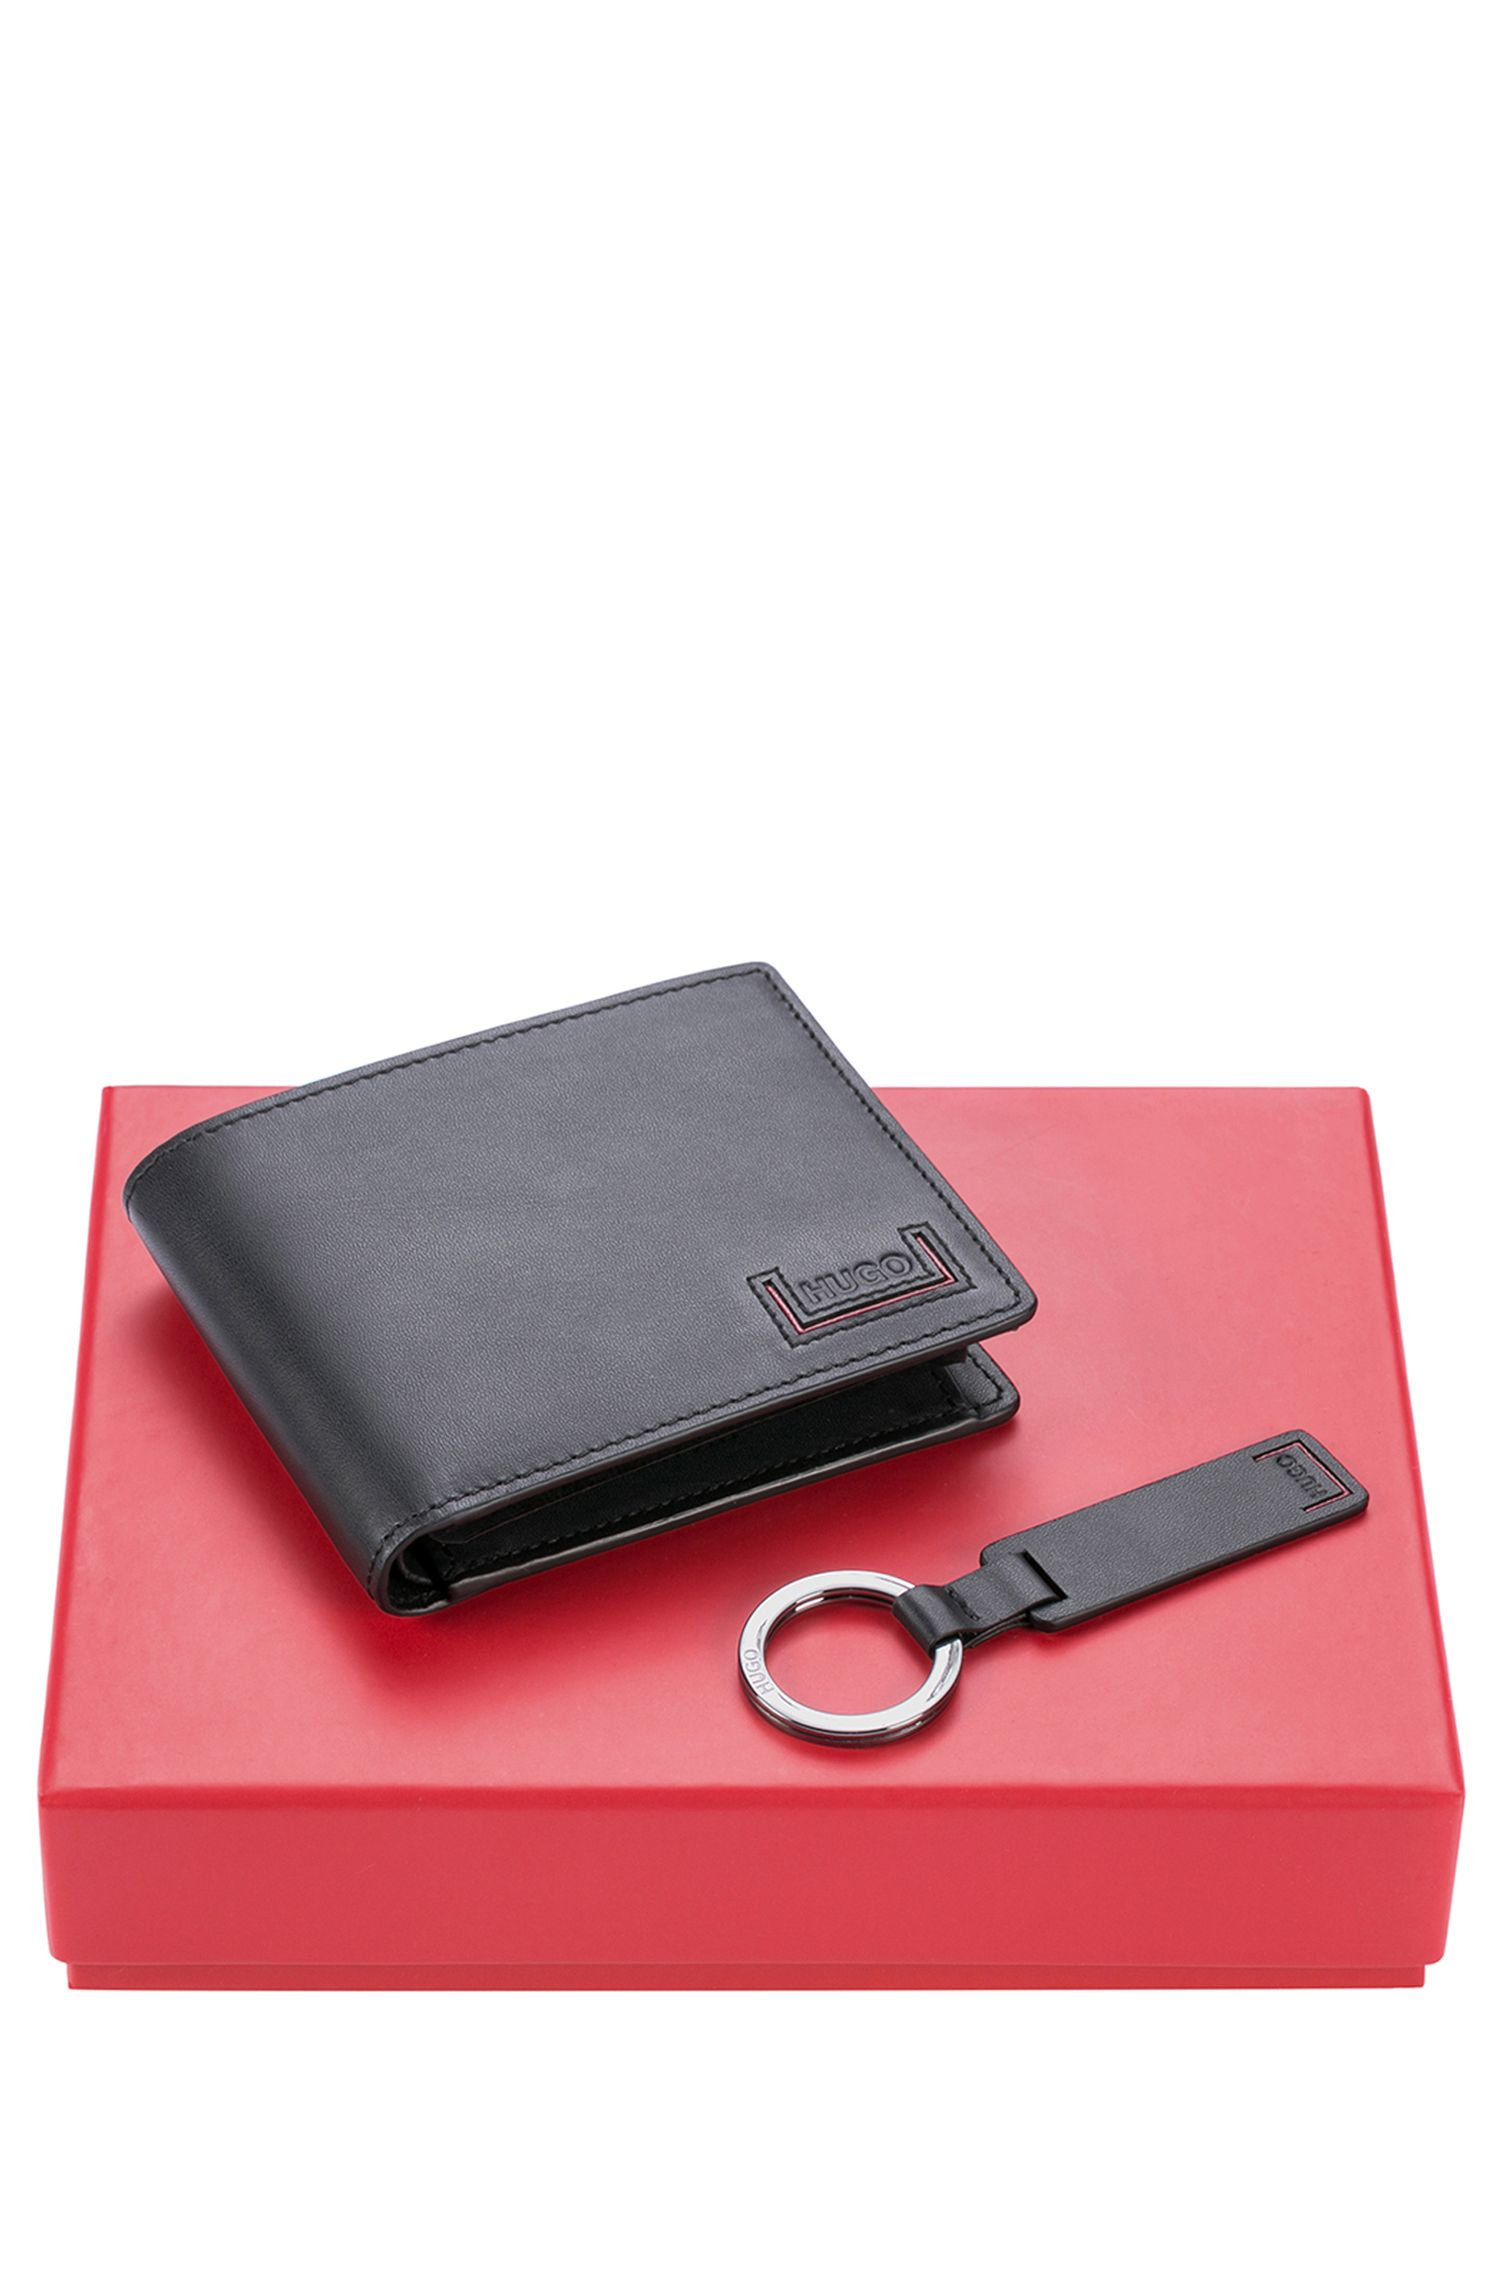 Leather bifold wallet and key ring gift set with logo embossing